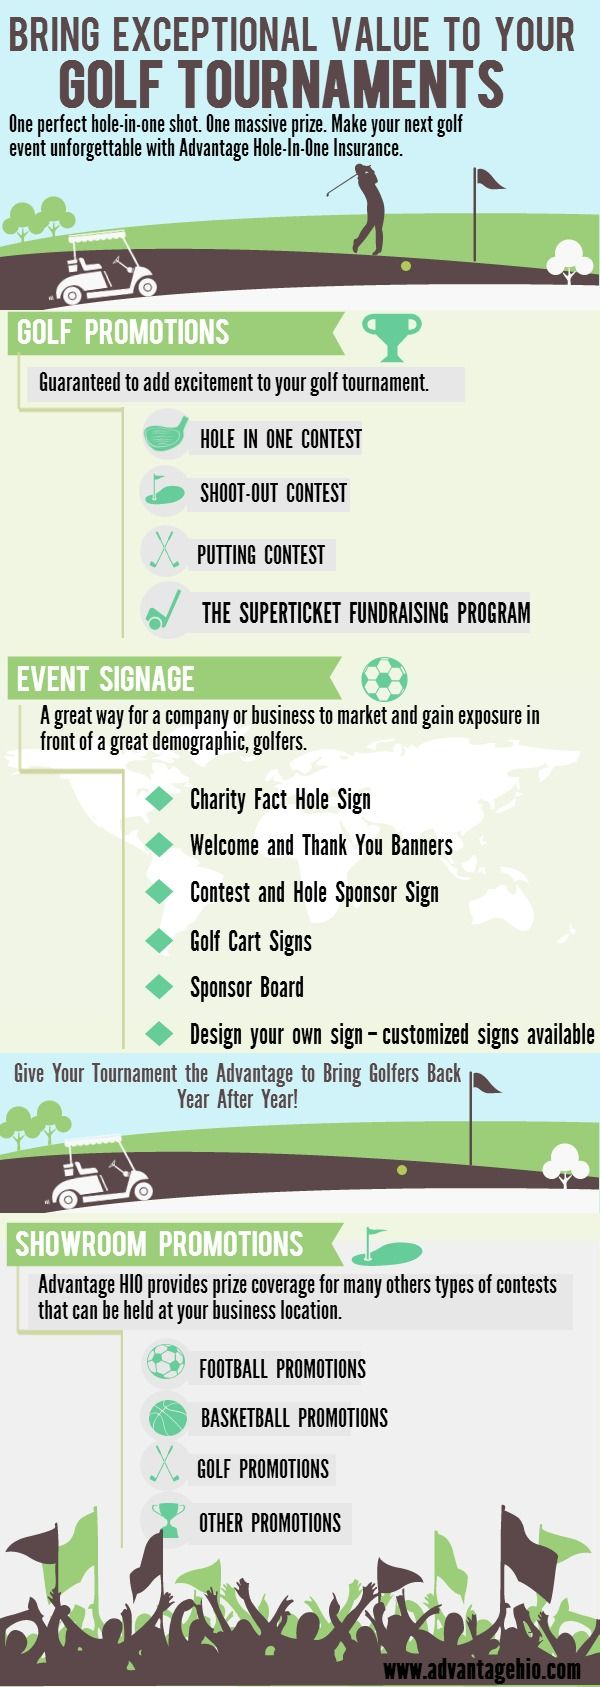 Golf tournament sponsorship ideas | Hole in one insurance companies | Advantagehio.com